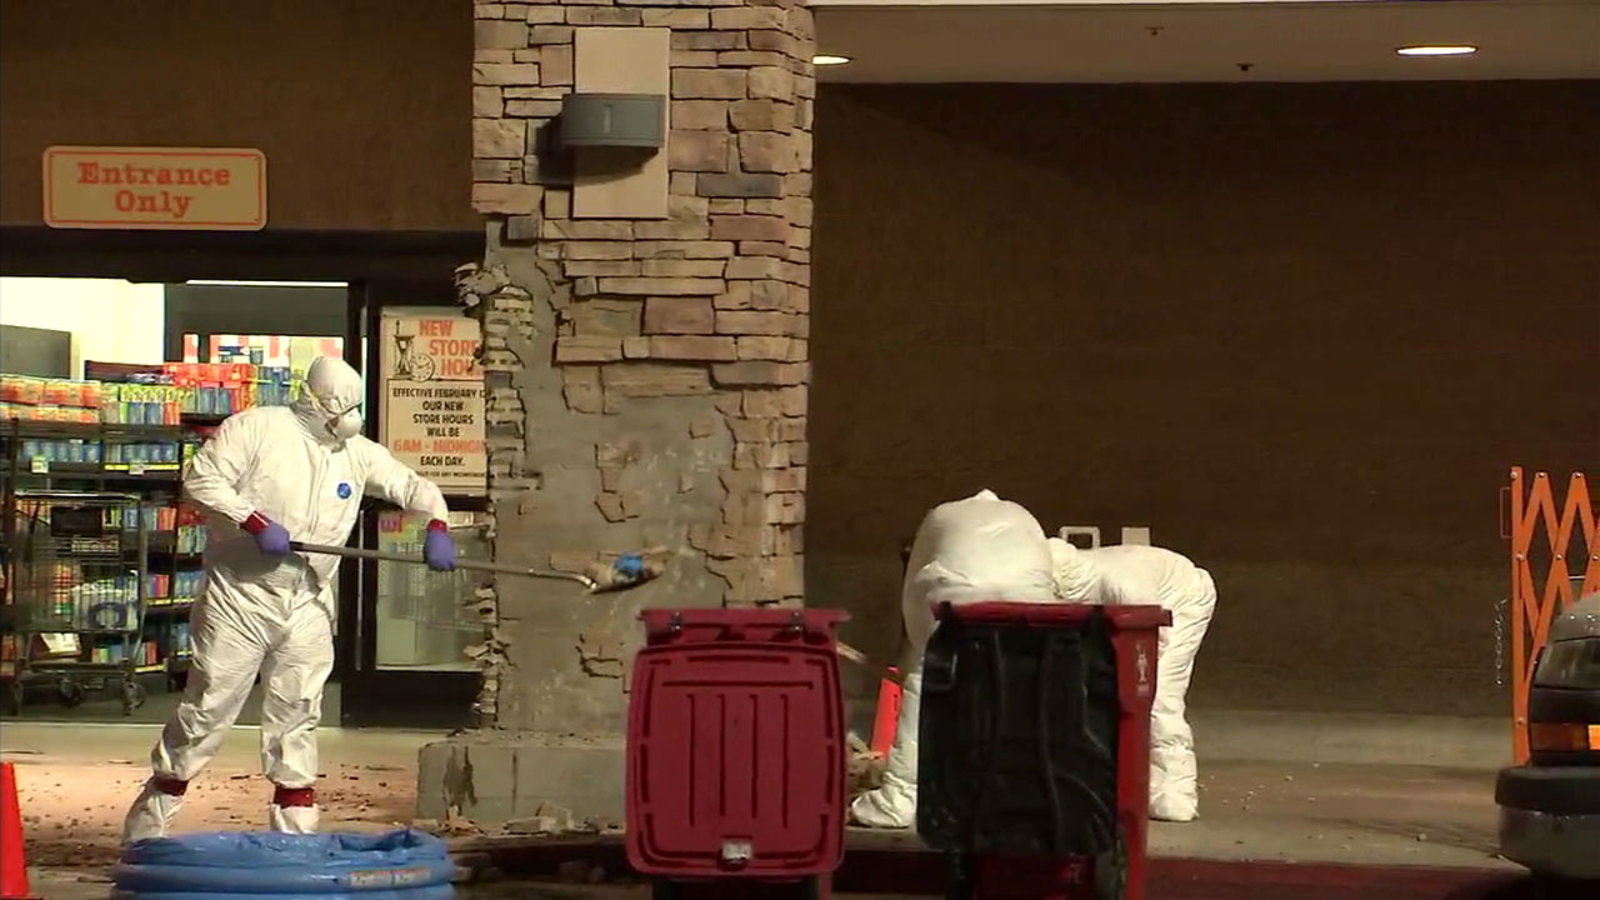 Body of possible chase suspect found inside entrance column of Lancaster supermarket